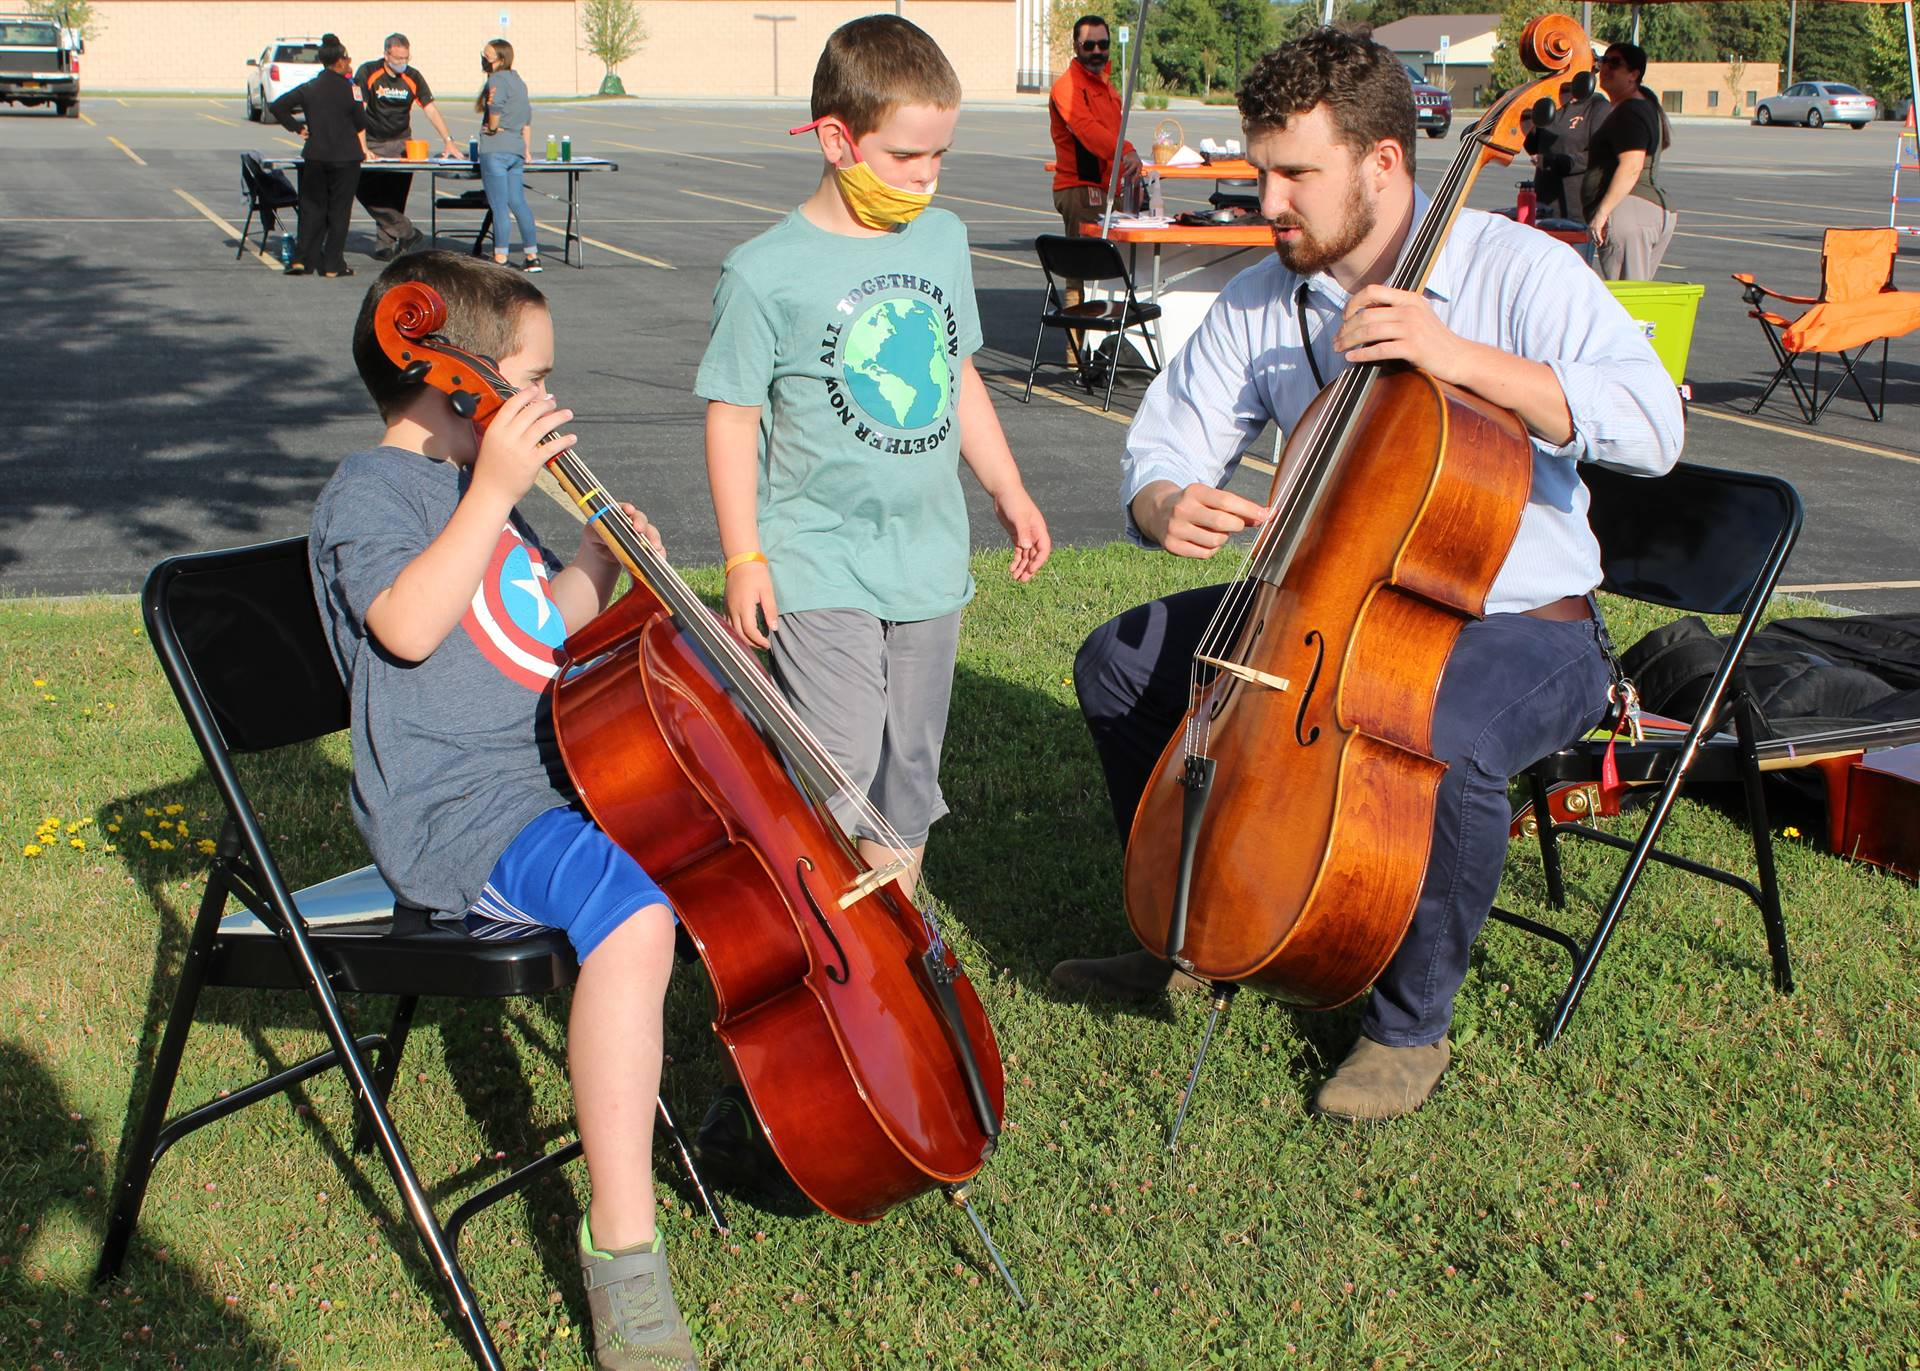 Students being introduced to string instruments